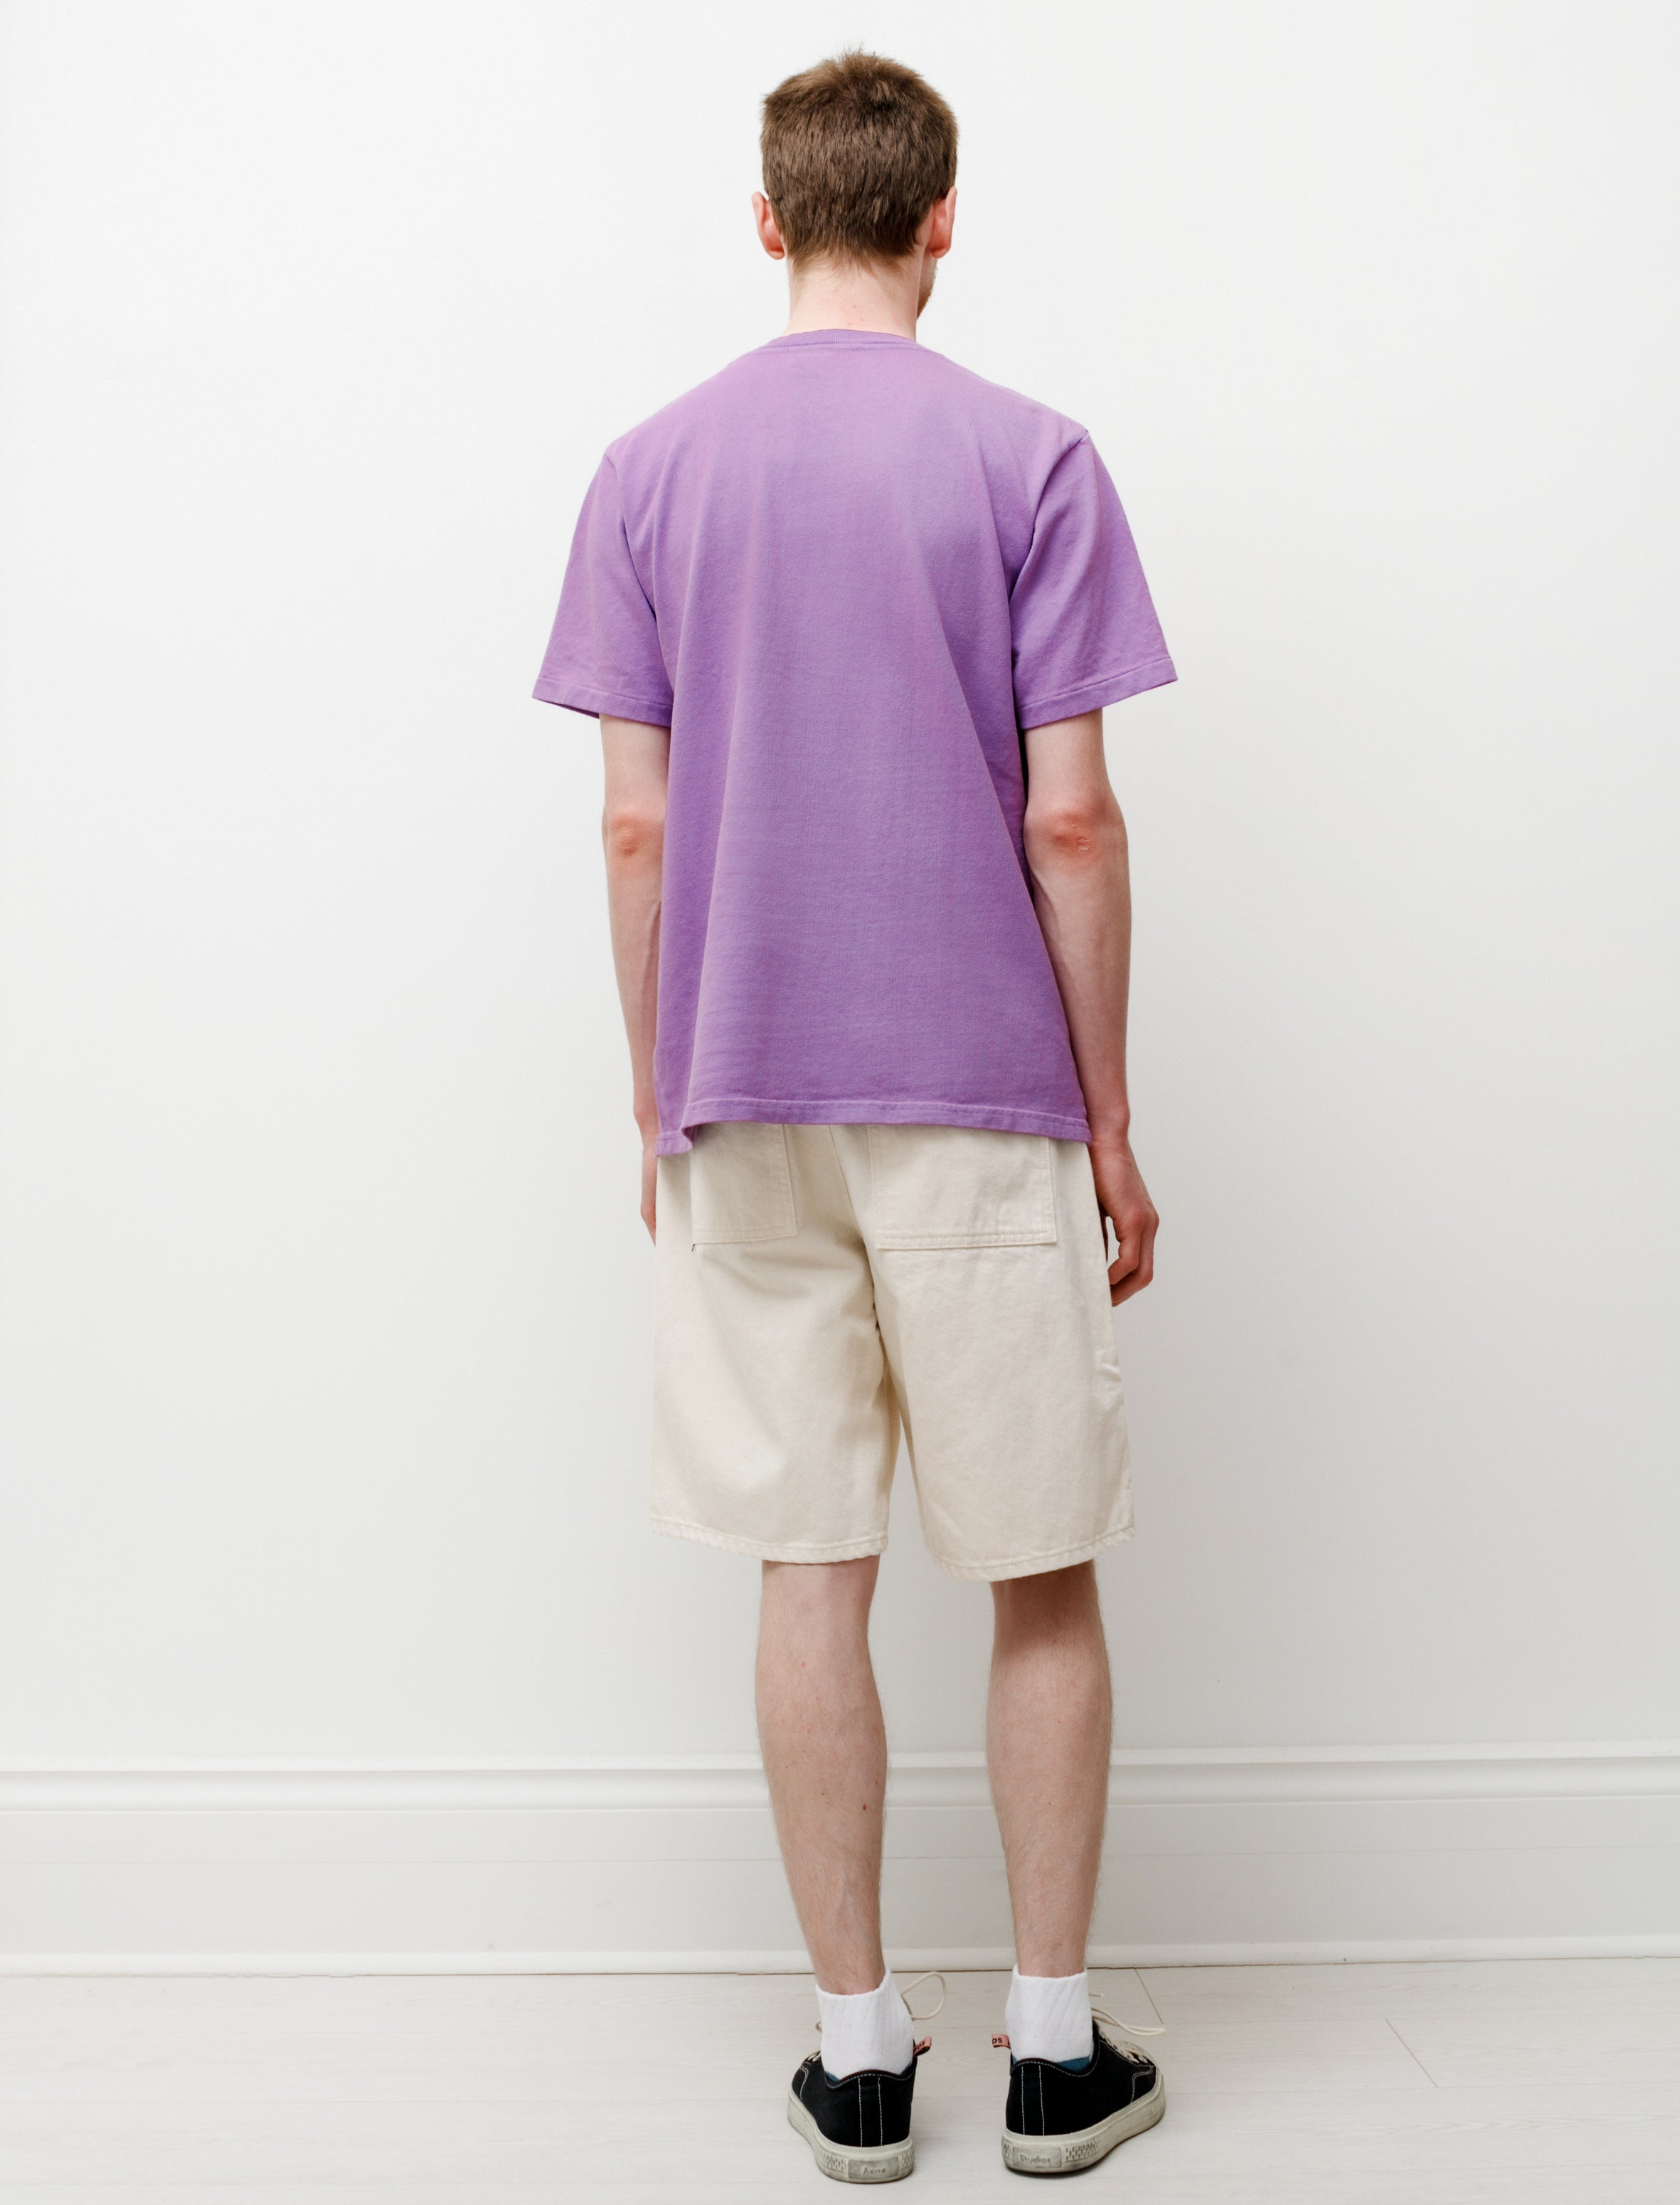 Box of 3 Memo Books - Dot Grid Paper no.4